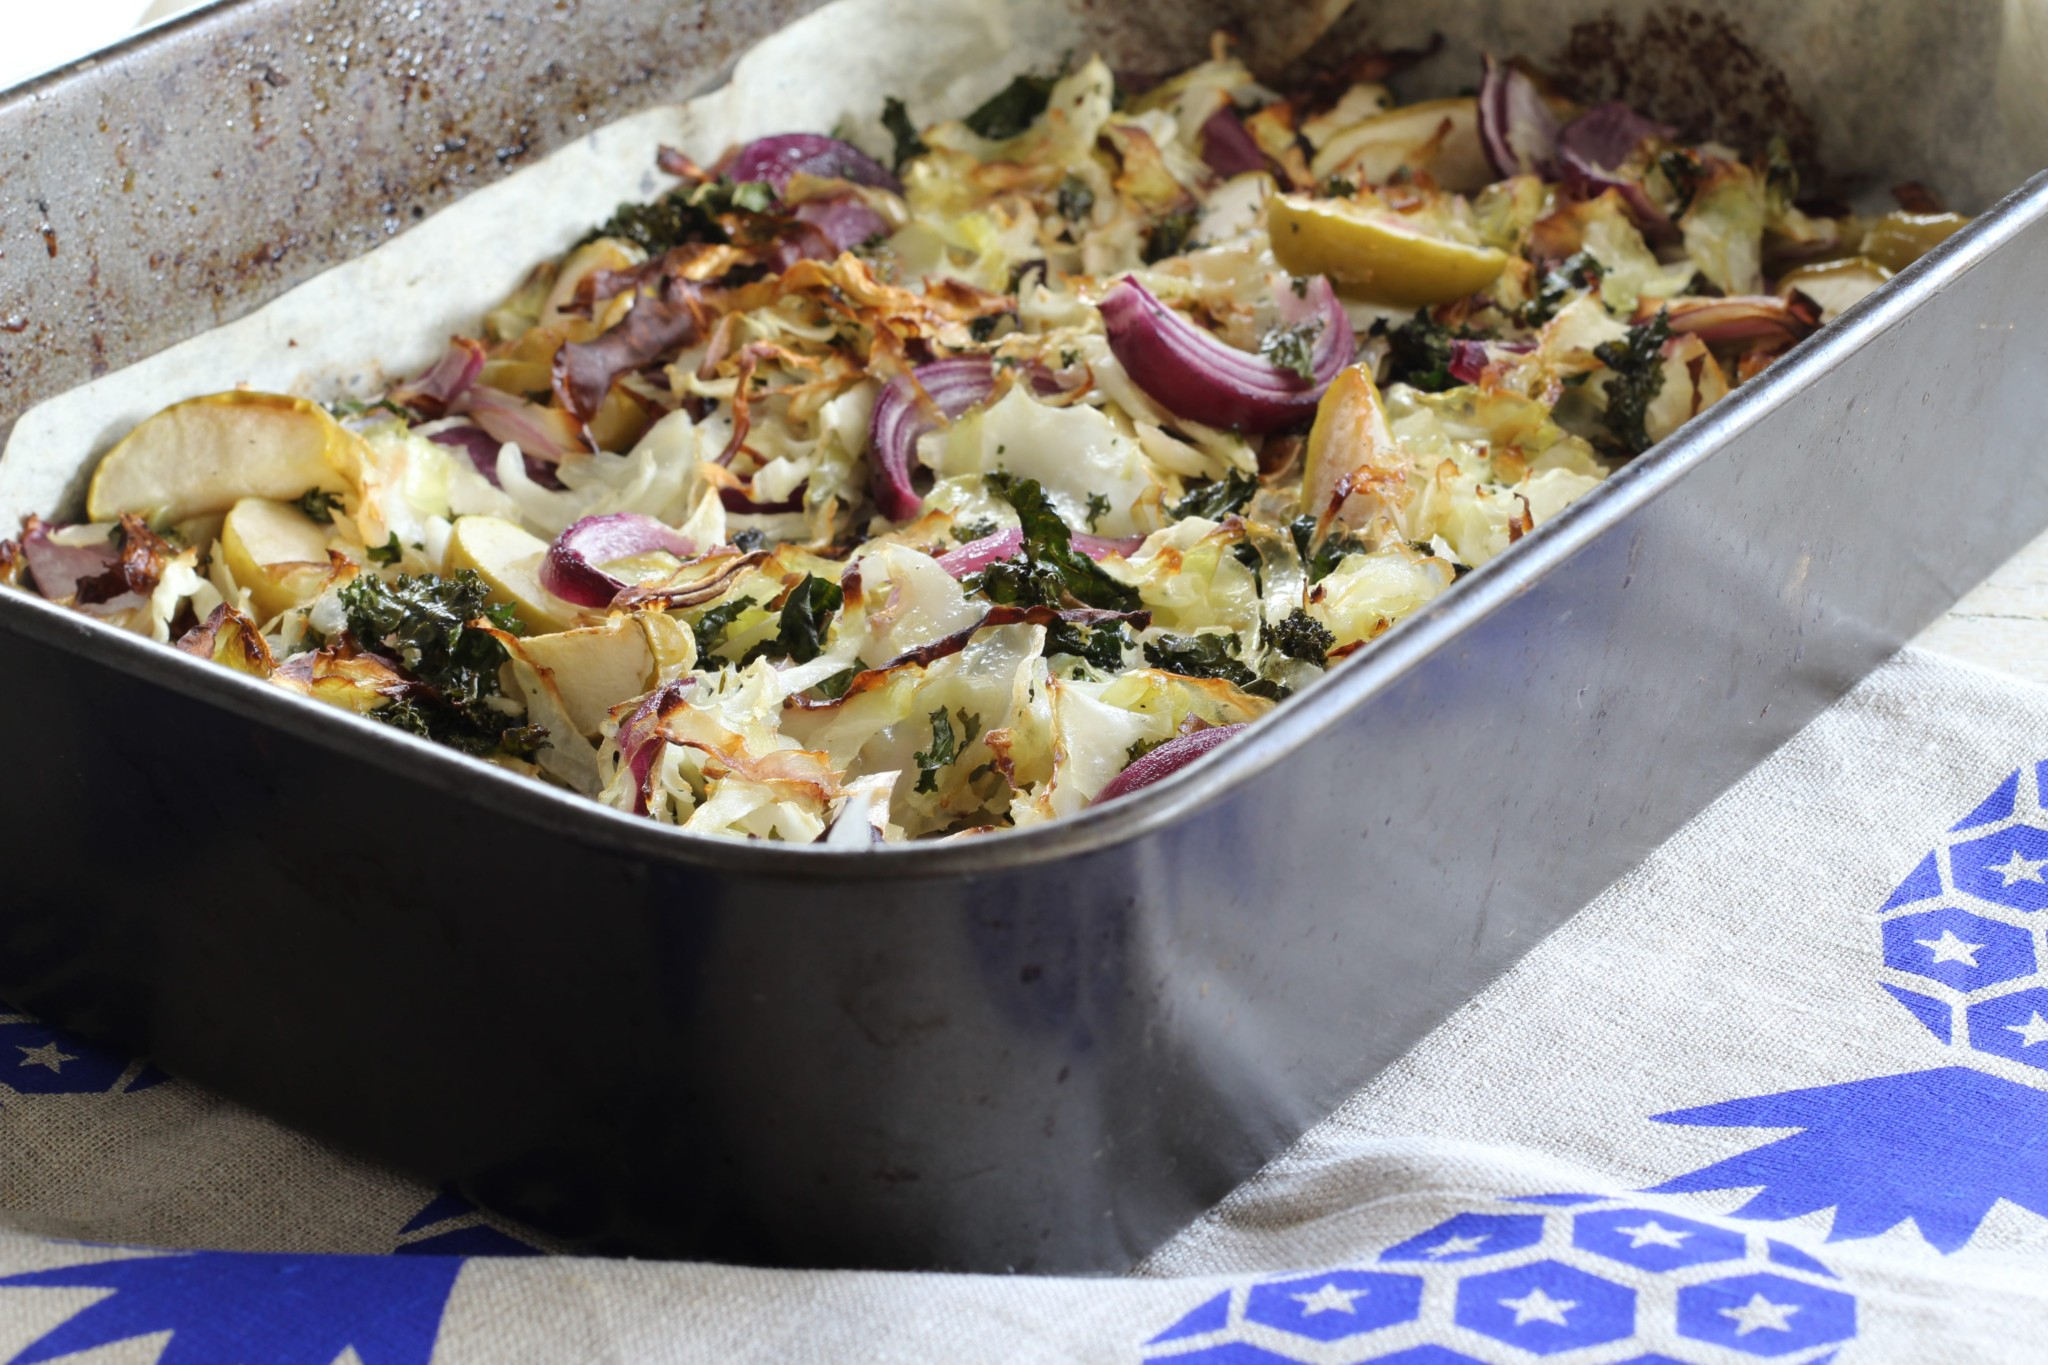 Roasted Cabbage & Kale Warm Salad (paleo. gf. df. vegan)